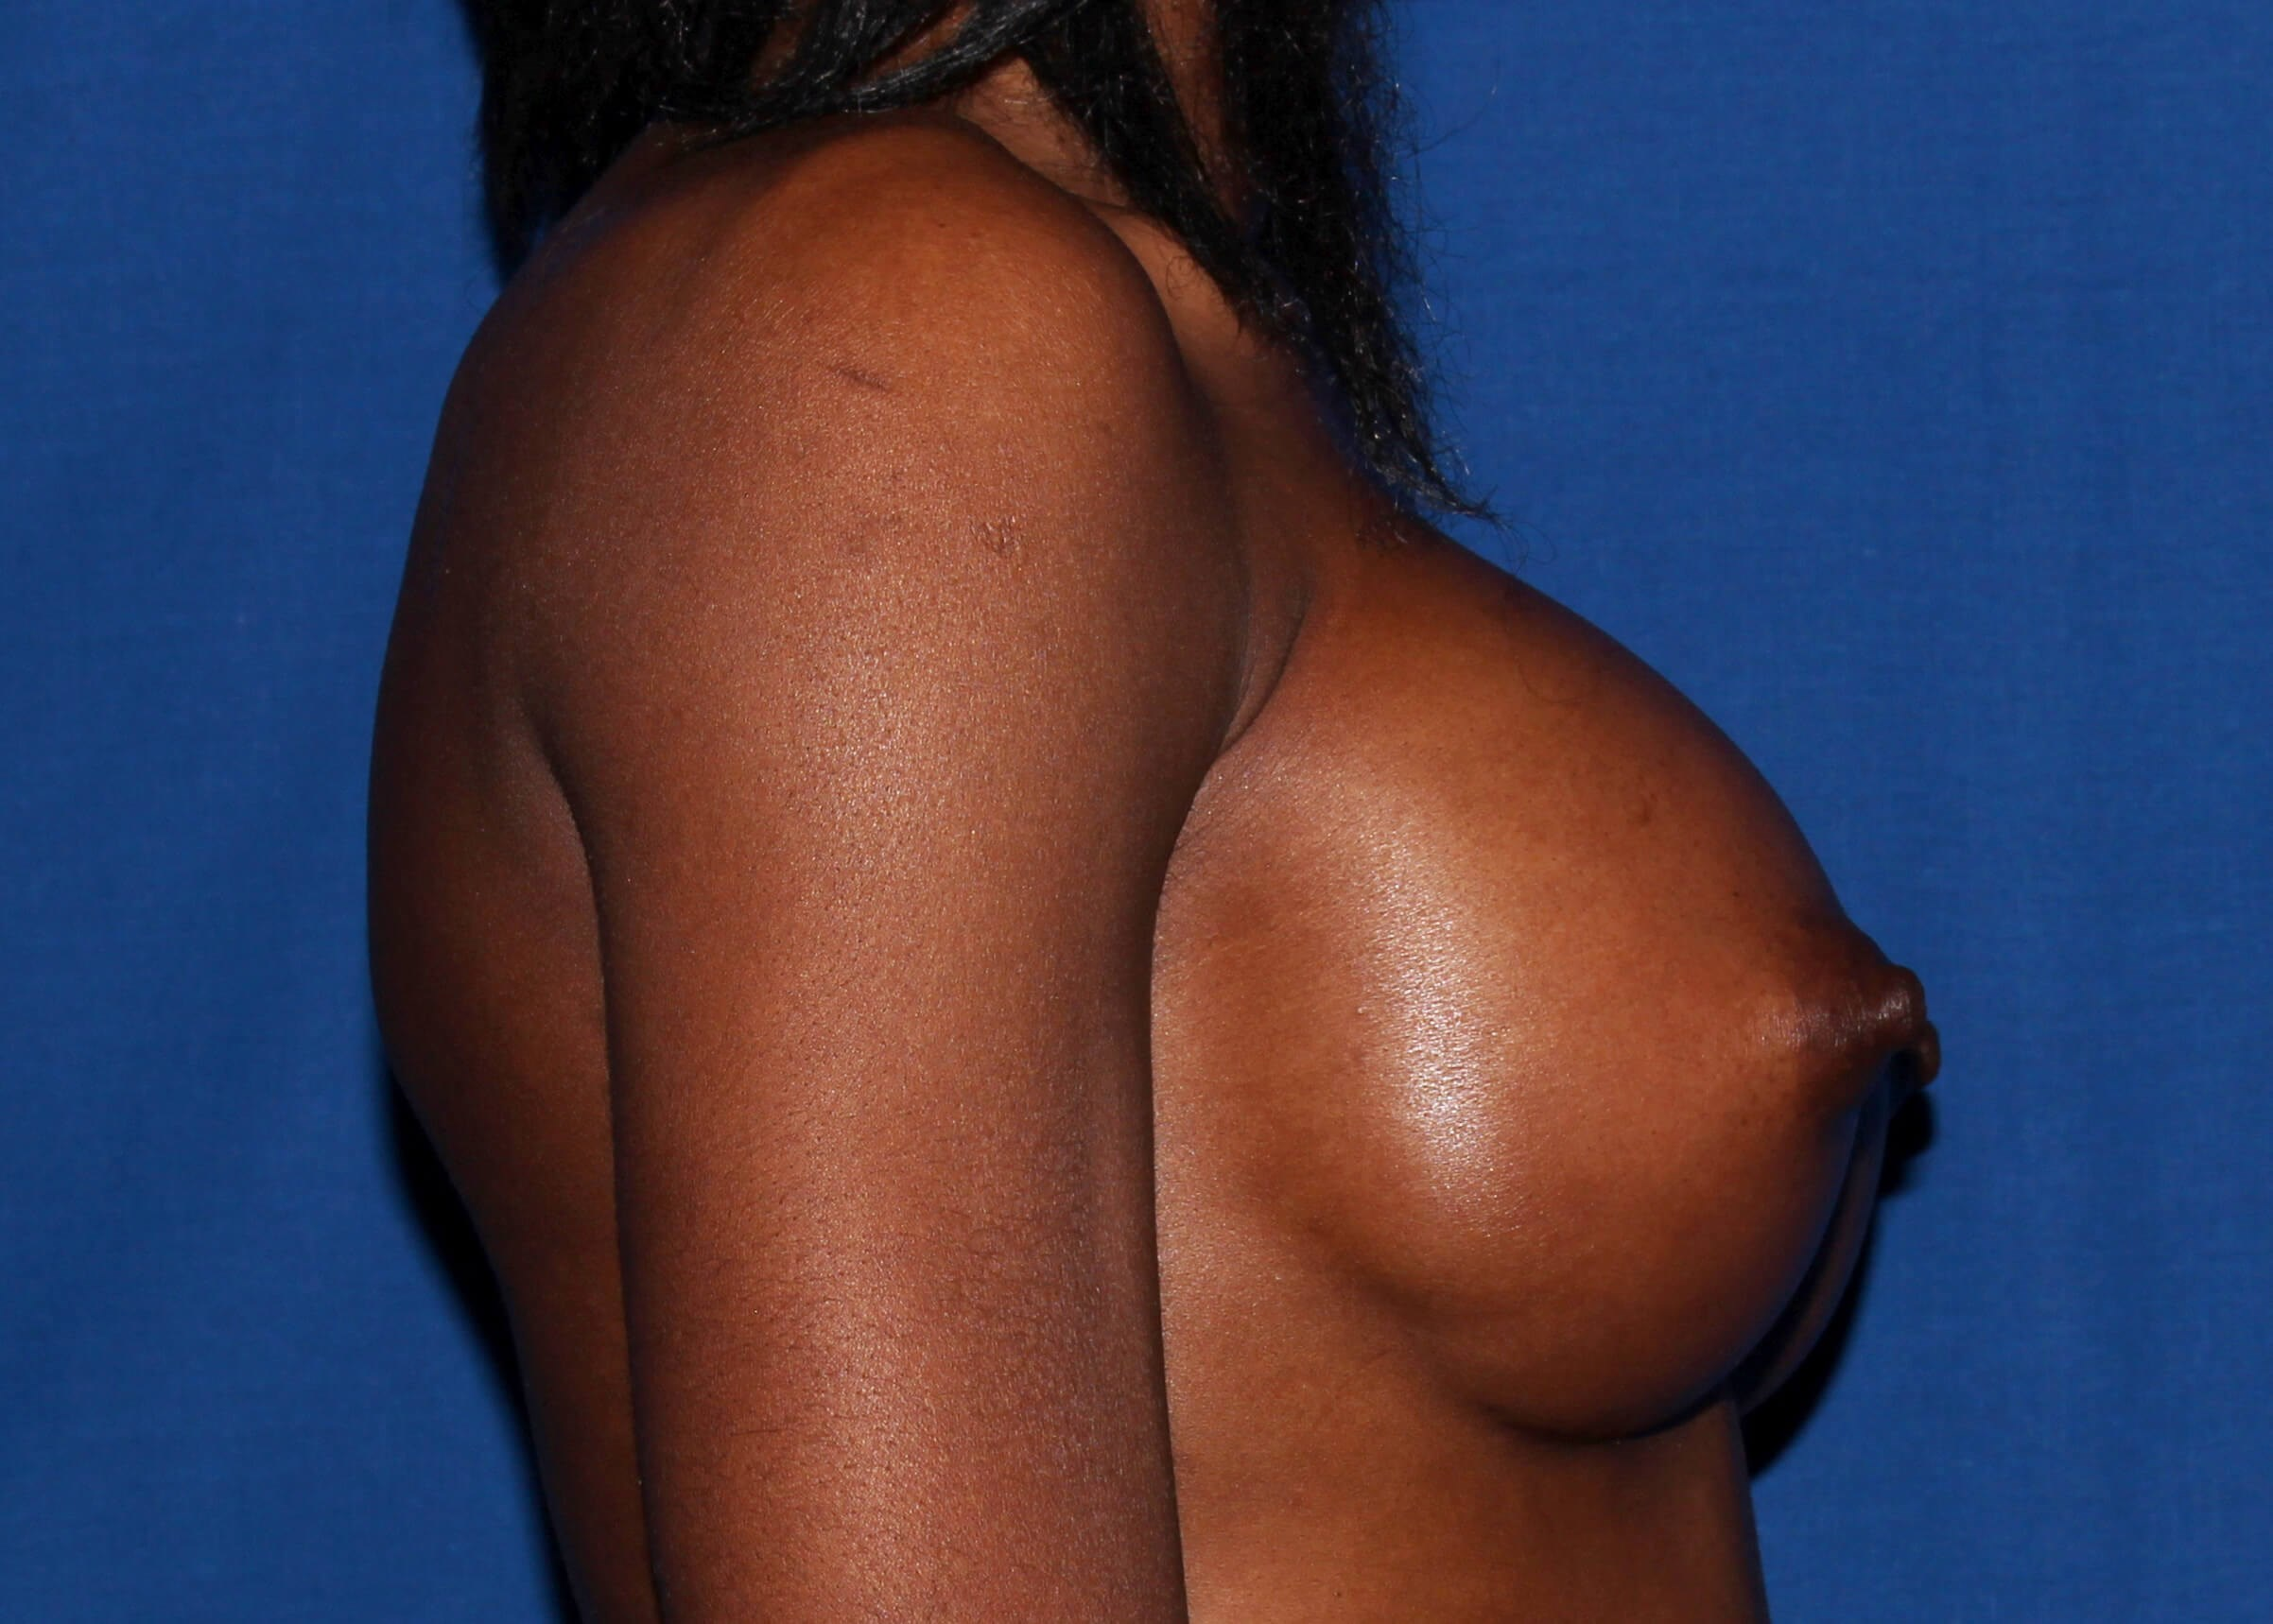 Breast Augmentation After Right View - Right View